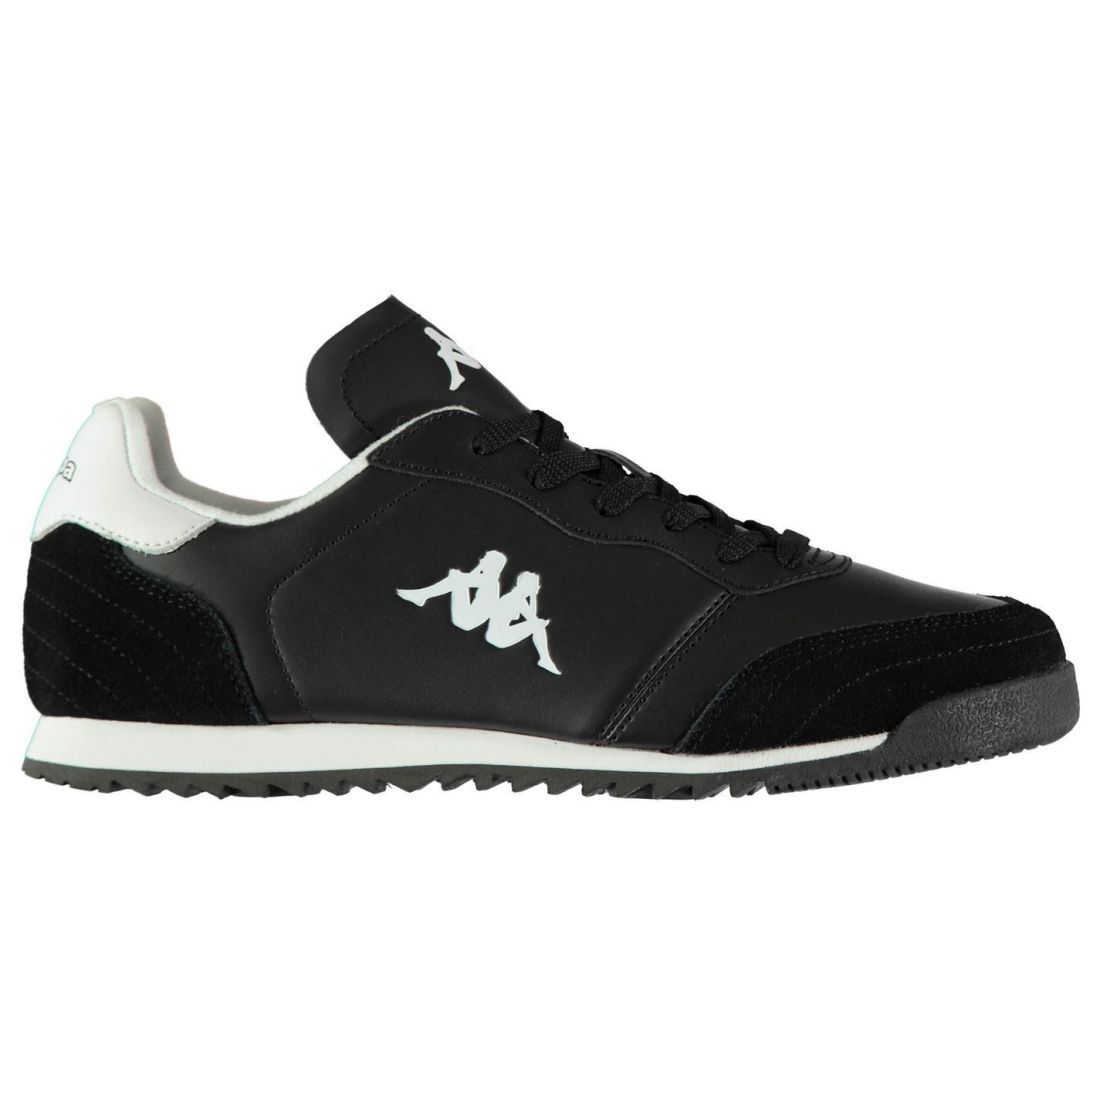 Kappa-Denser-DLX-Sneakers-Mens-Gents-Low-Laces-Fastened-Padded-Ankle-Collar miniatuur 2